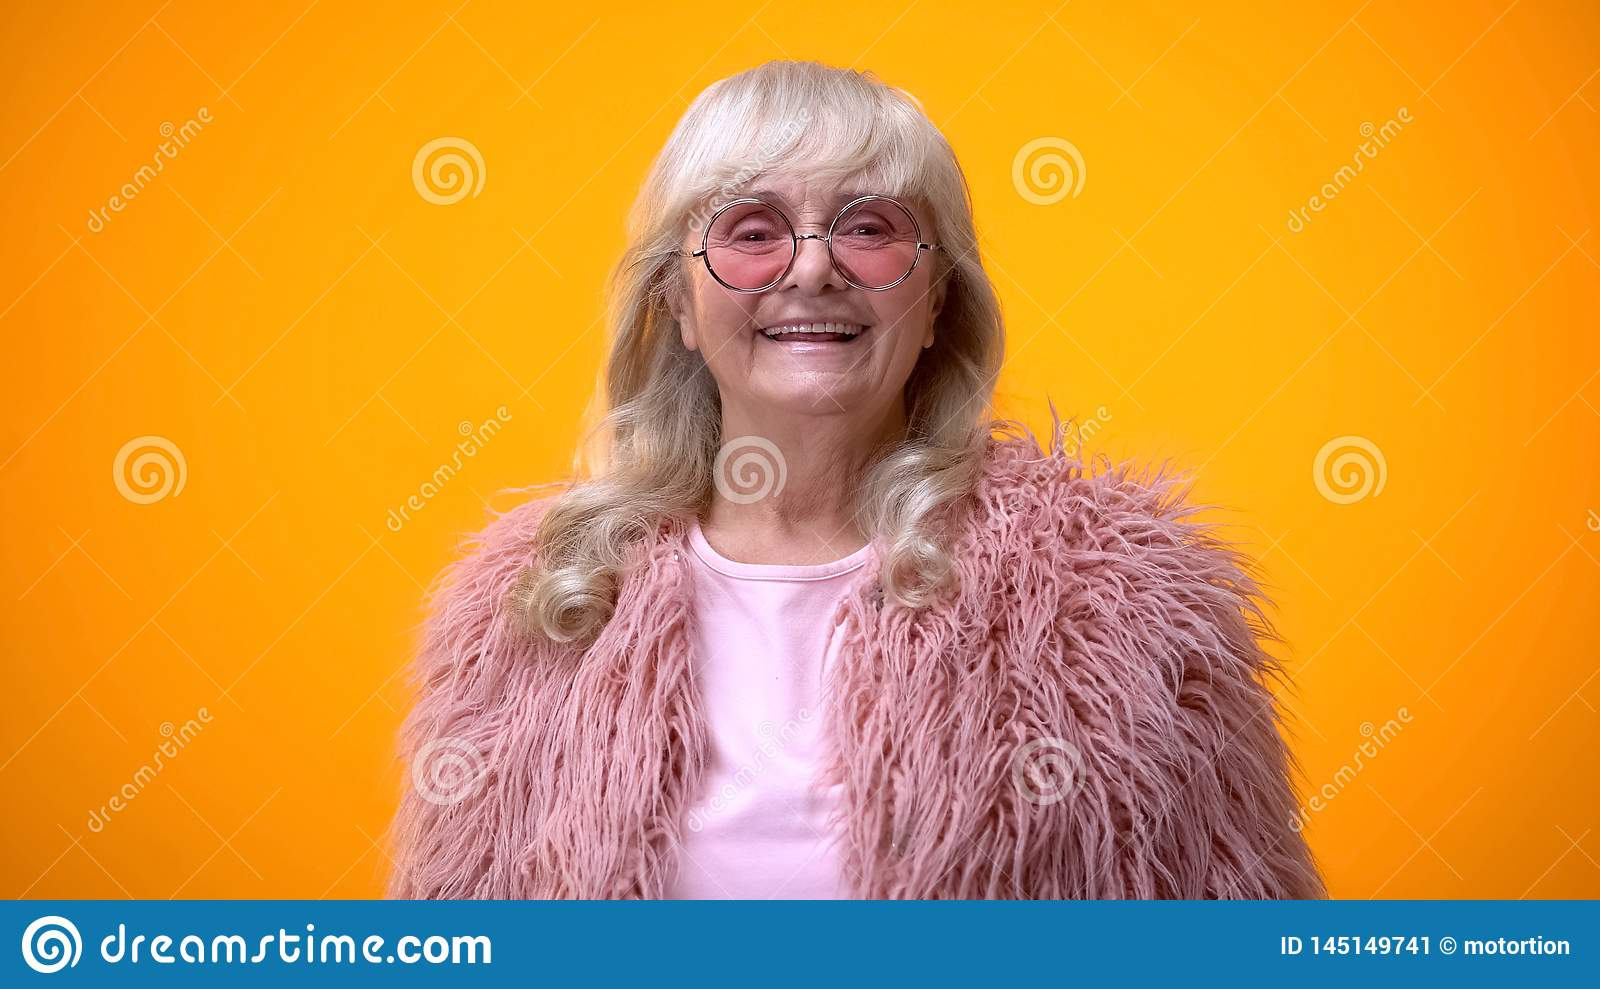 Cheerful senior woman in pink coat and round sunglasses smiling on camera